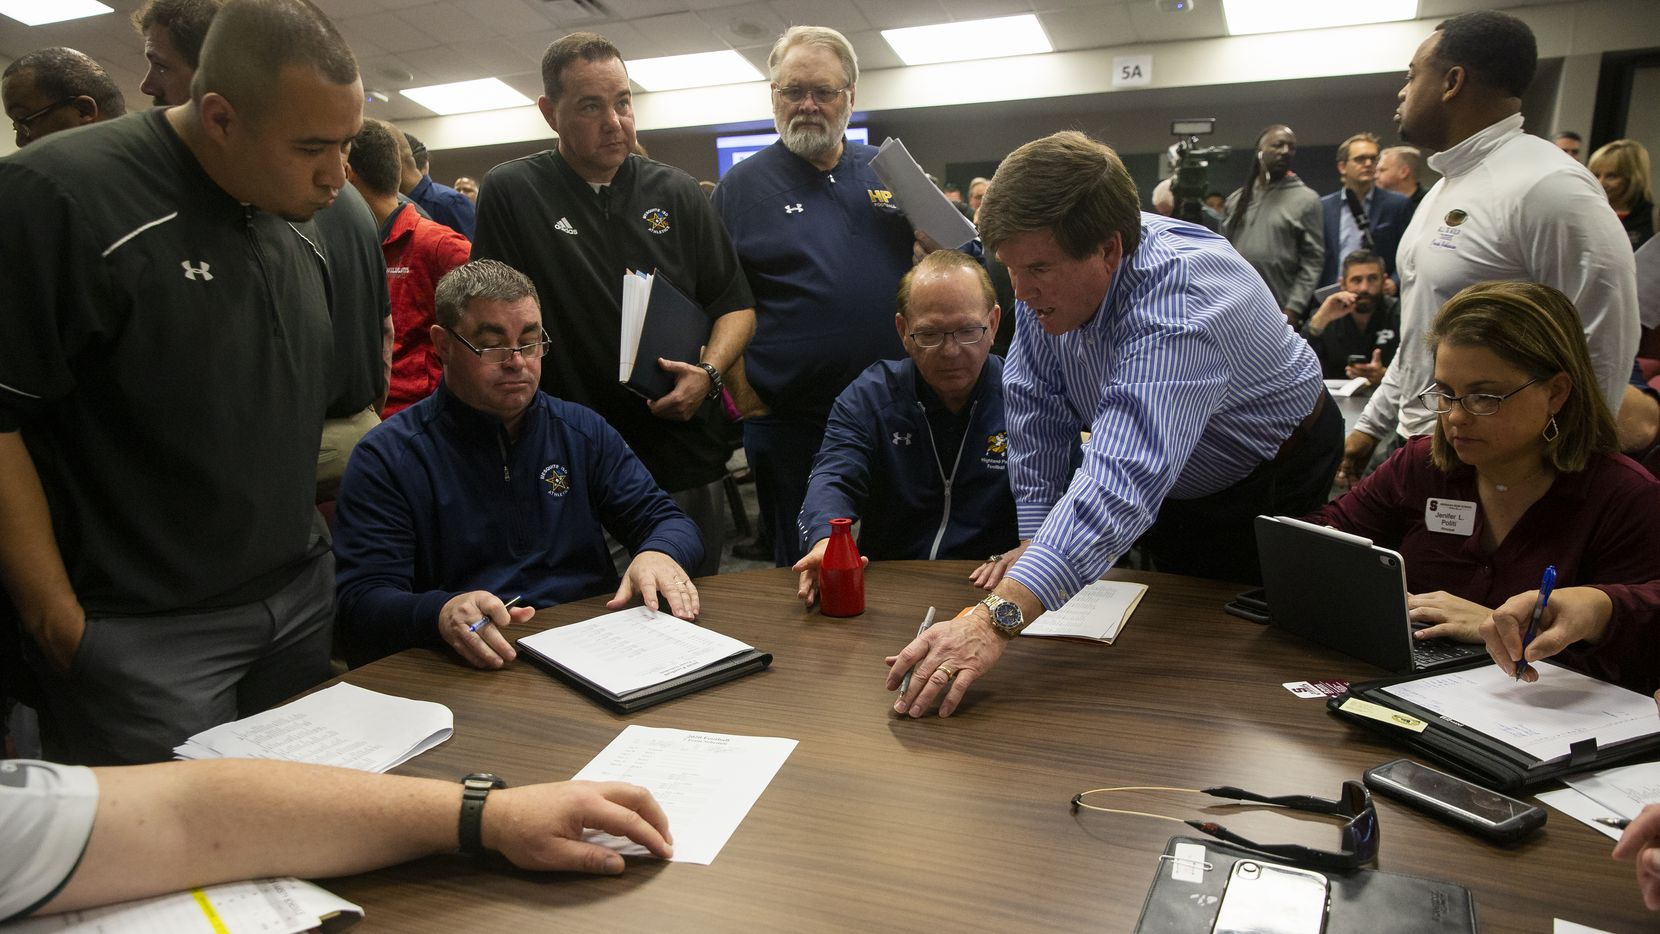 The Mesquite coaching staff, the Highland Park staff (including Highland Park head football coach Randy Allen (center, seated) and other area schools work on scheduling games following the UIL realignment announcement at the Birdville Fine Arts/Athletics Complex on Feb. 3, 2020 in North Richland Hills.